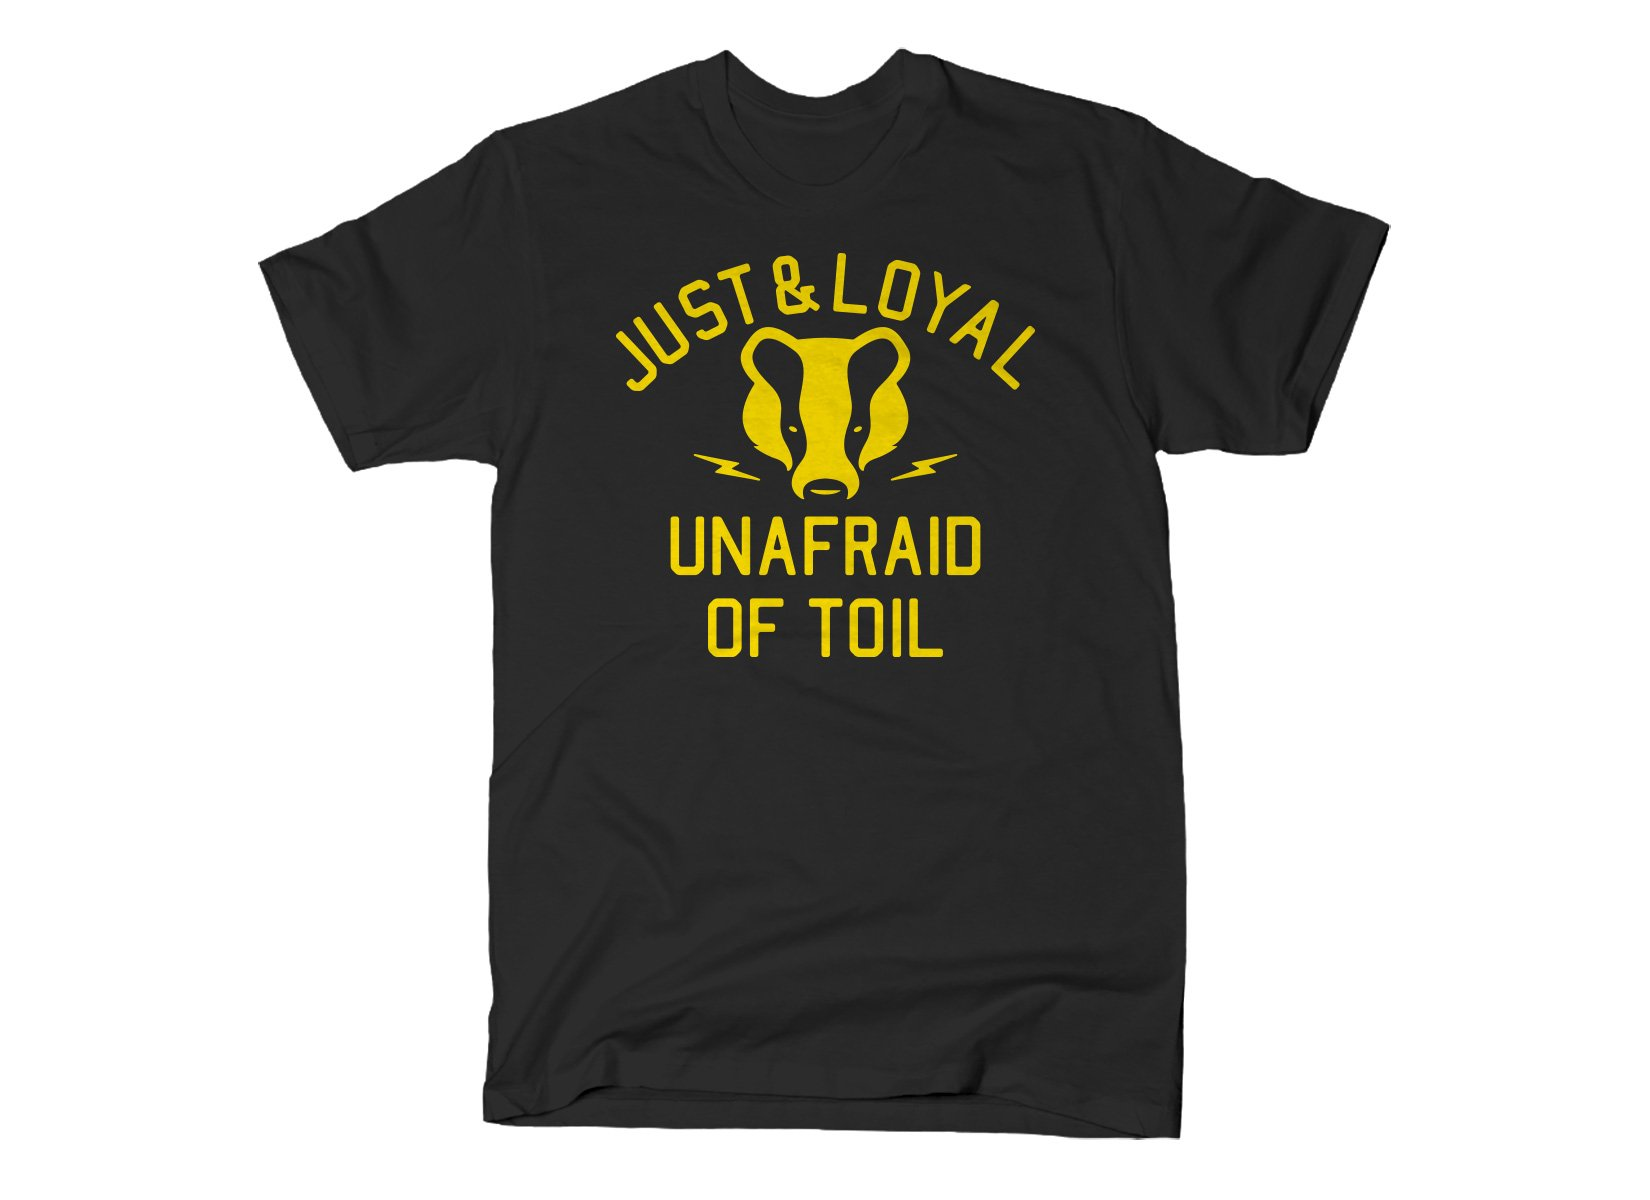 Just And Loyal, Unafraid Of Toil on Mens T-Shirt